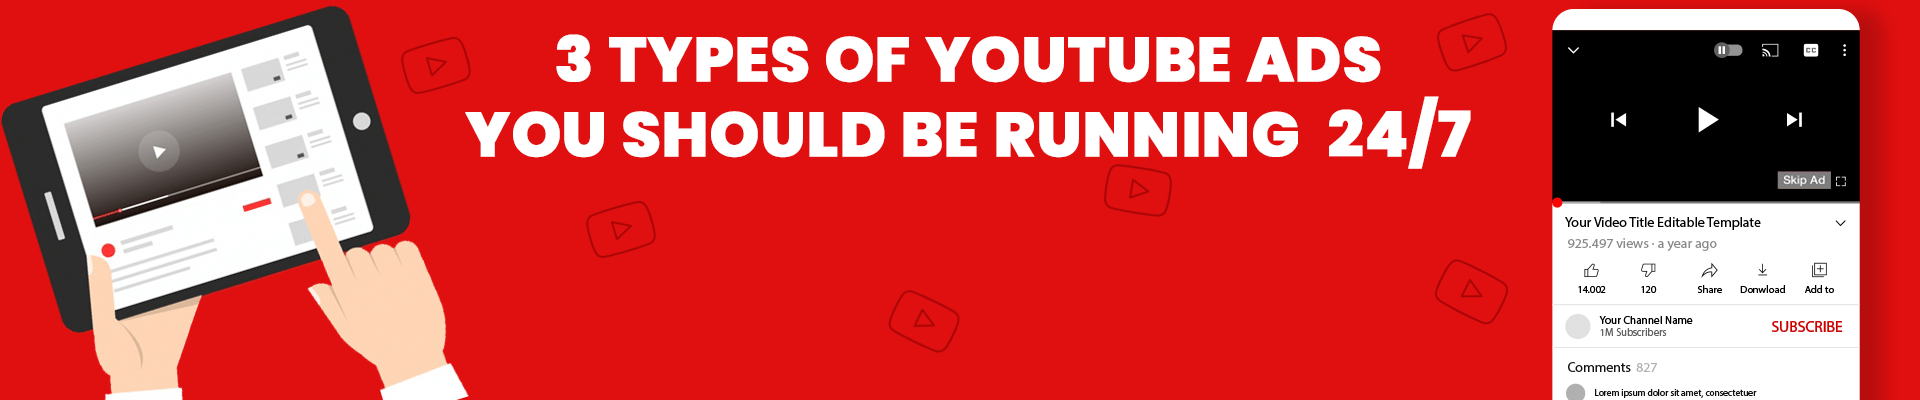 3 Types of YouTube Ads You Should be Running on YouTube 24/7 [2021]